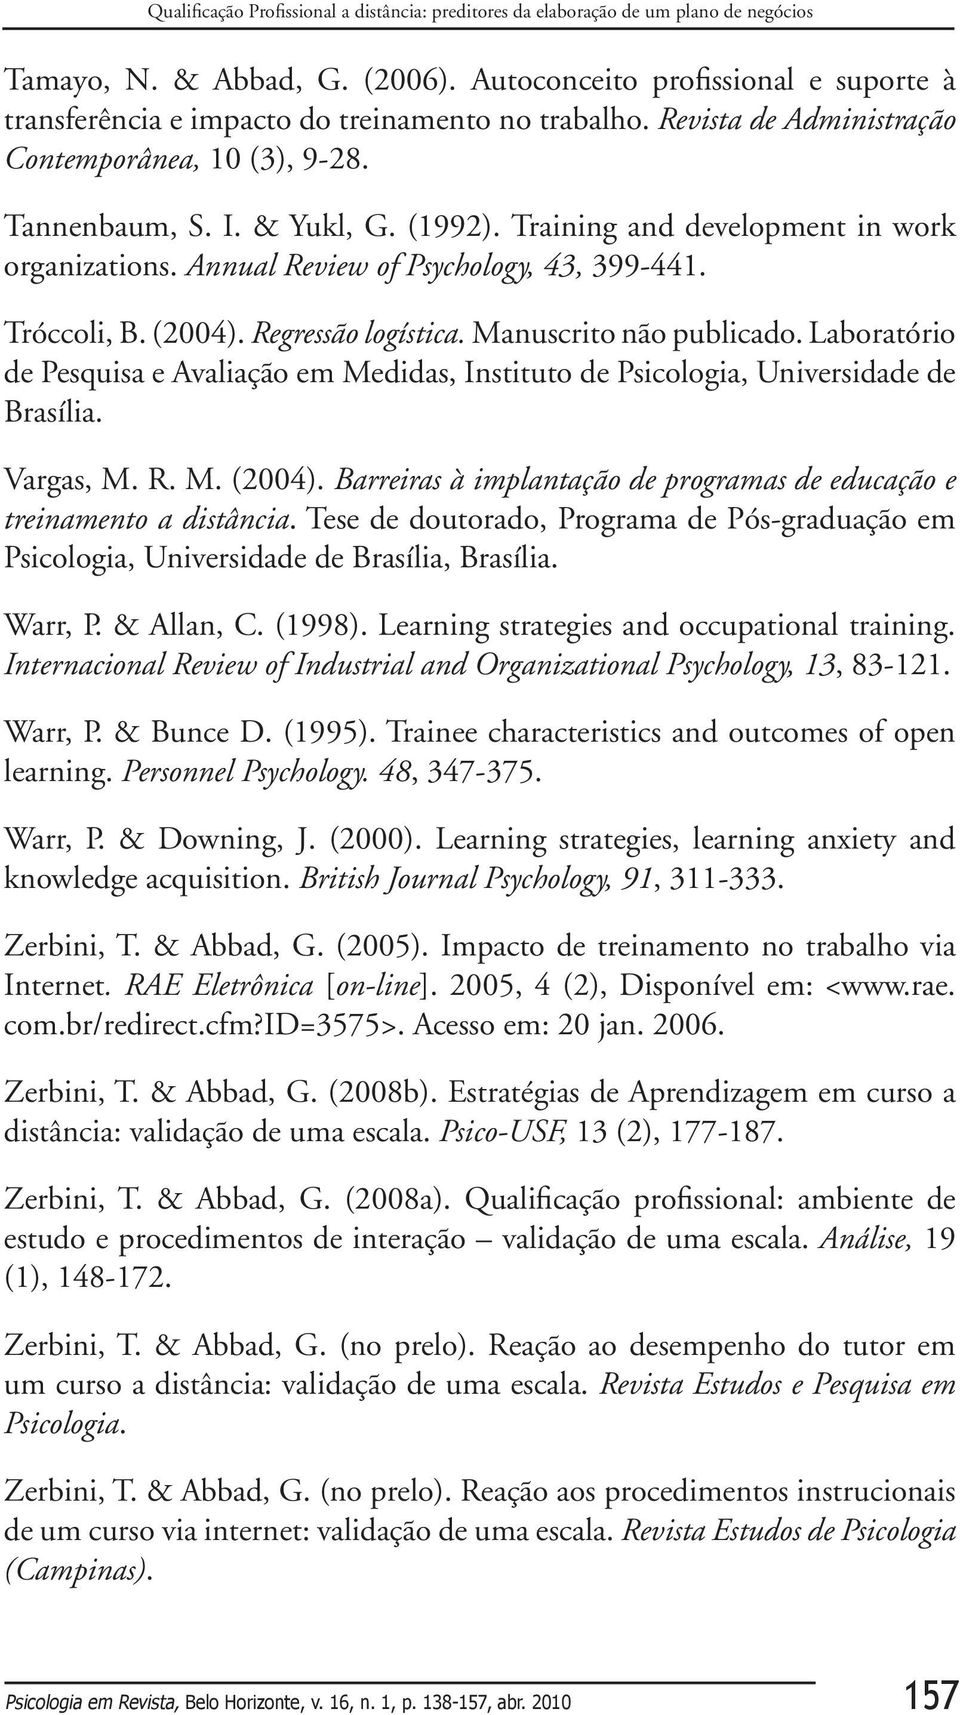 Training and development in work organizations. Annual Review of Psychology, 43, 399-441. Tróccoli, B. (2004). Regressão logística. Manuscrito não publicado.